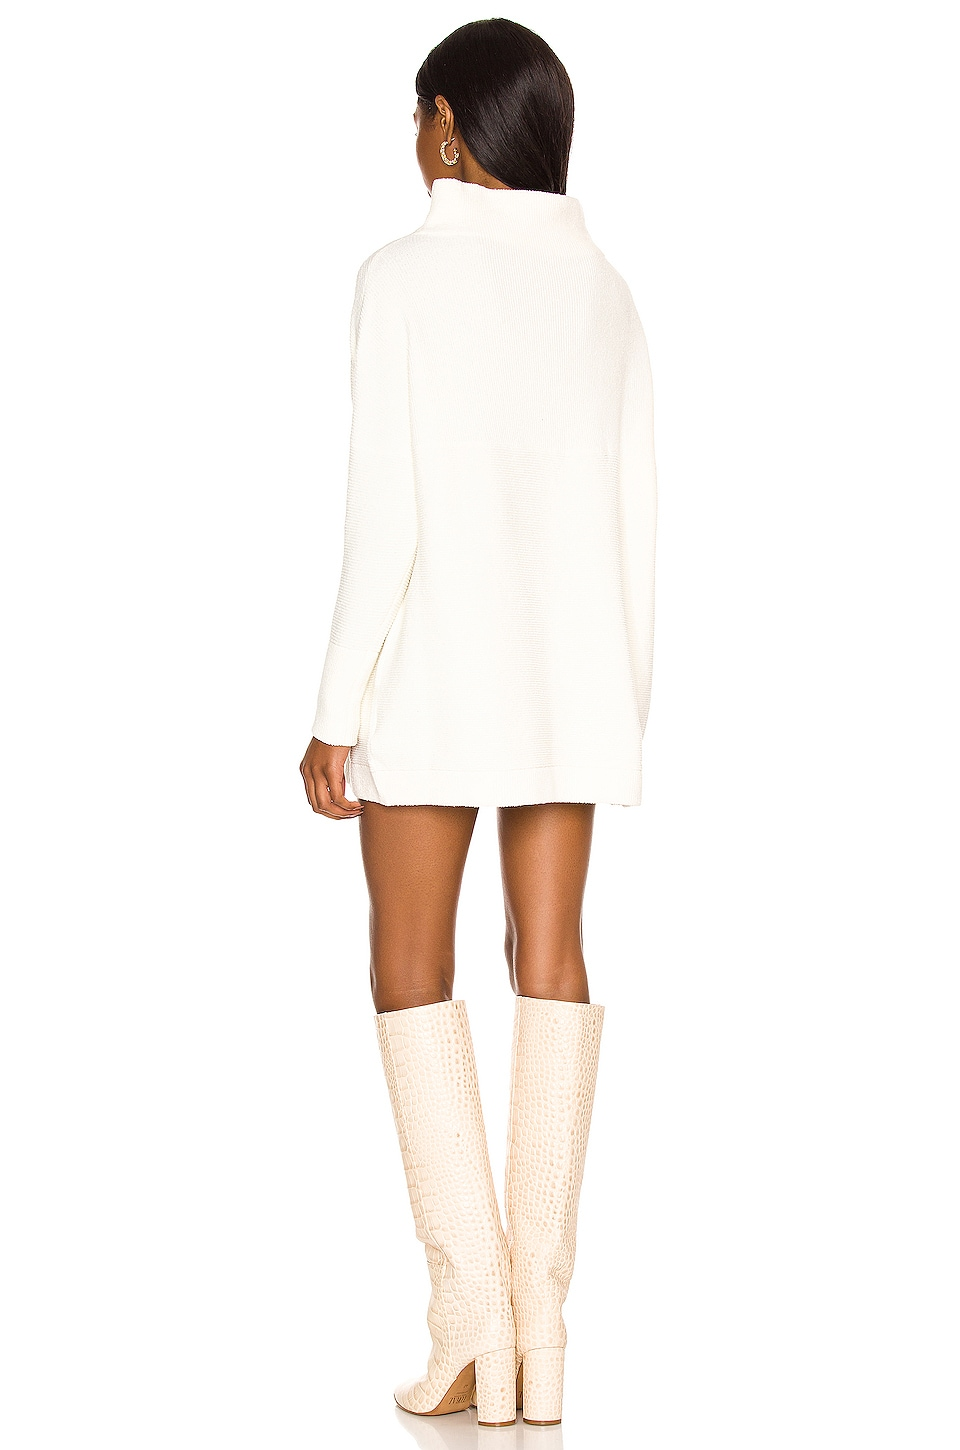 Ottoman Slouchy Tunic Sweater Dress, view 3, click to view large image.